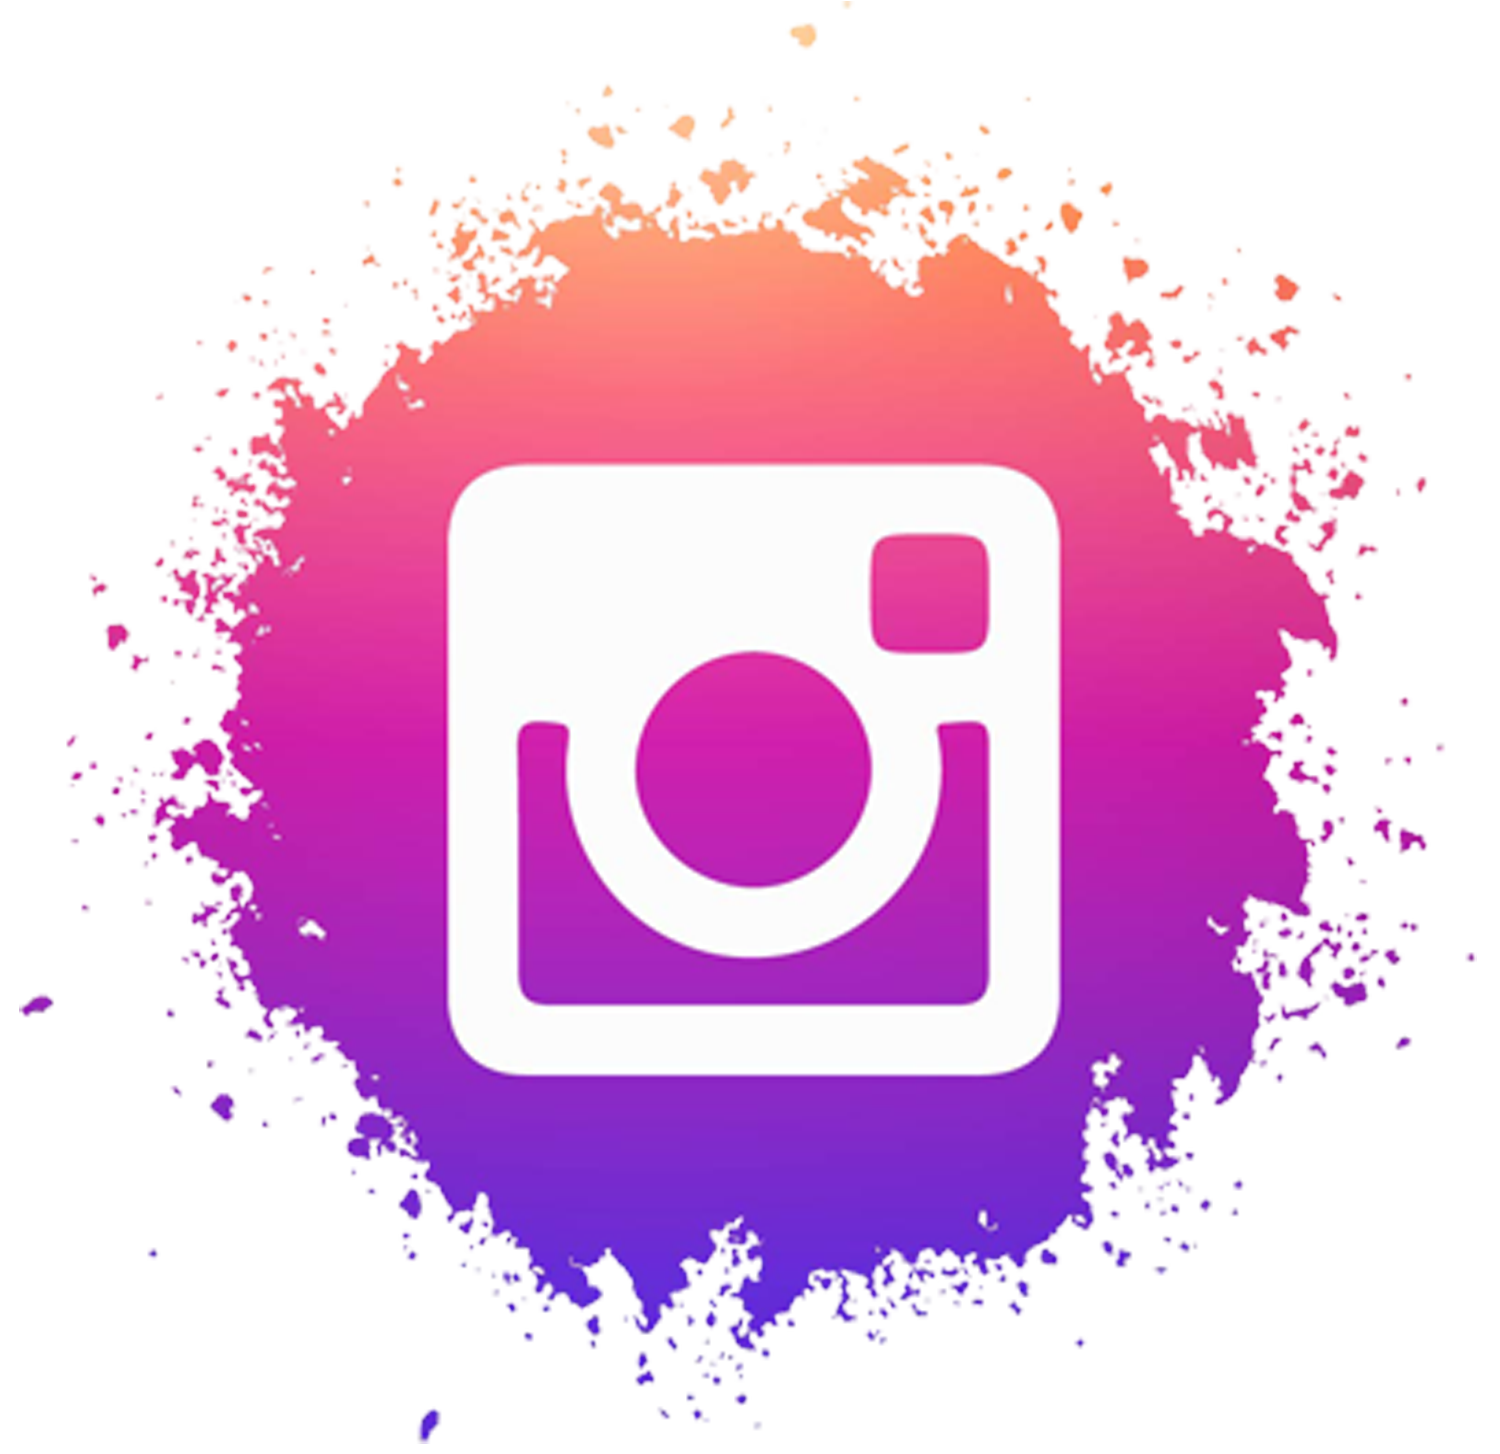 buy instagram comments with adsmember